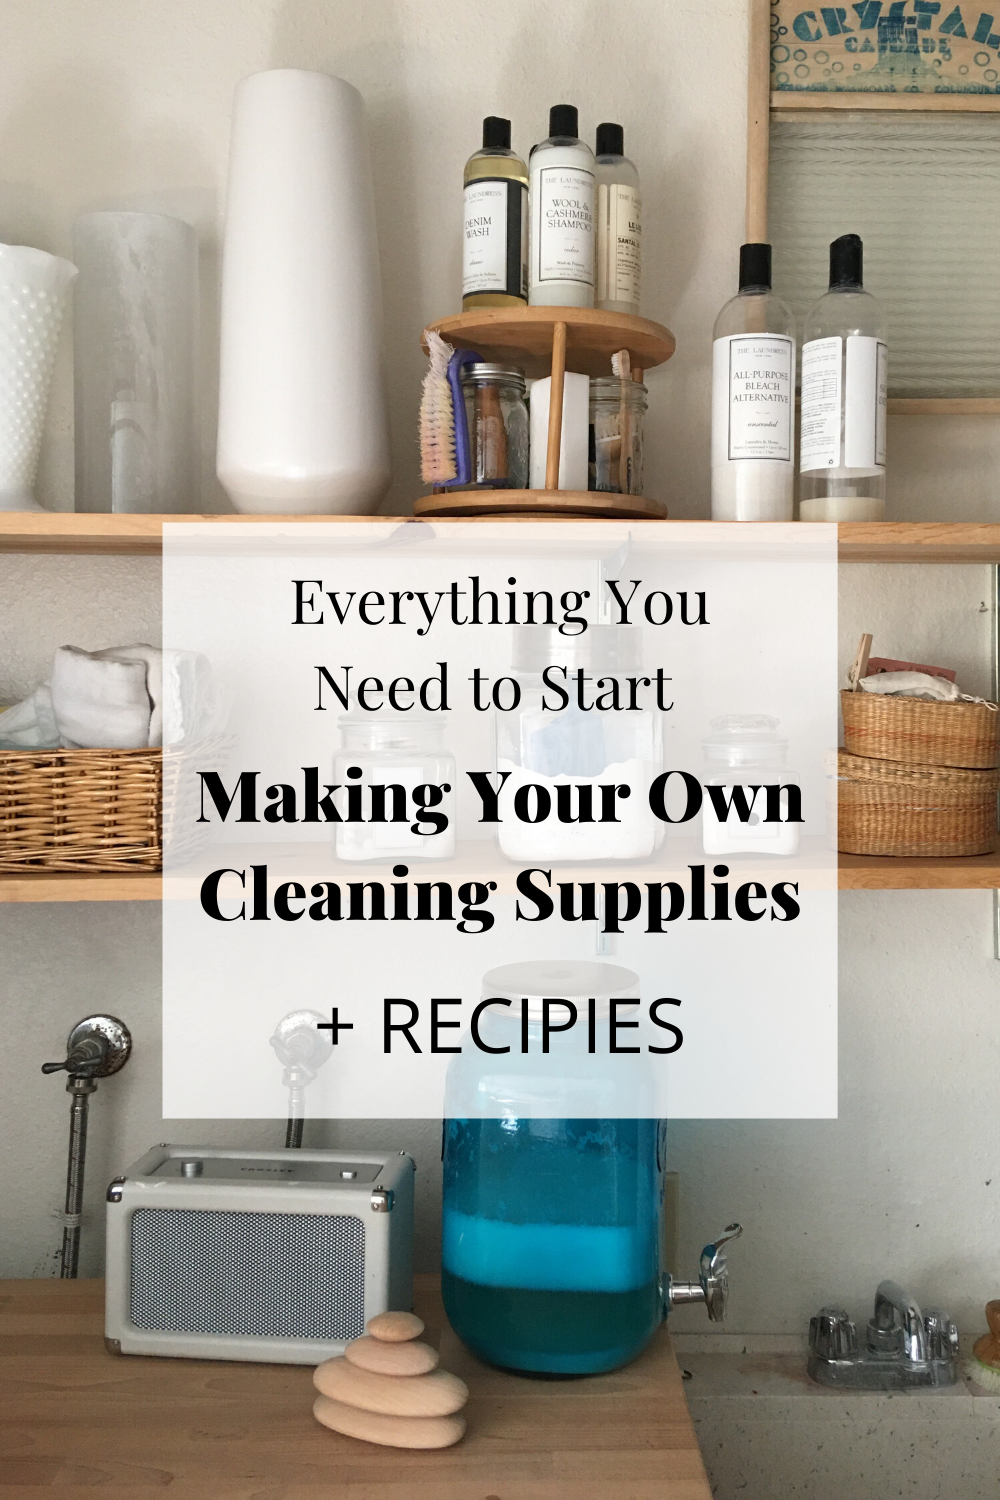 organized shelf of cleaning supplies and homemade laundry detergent